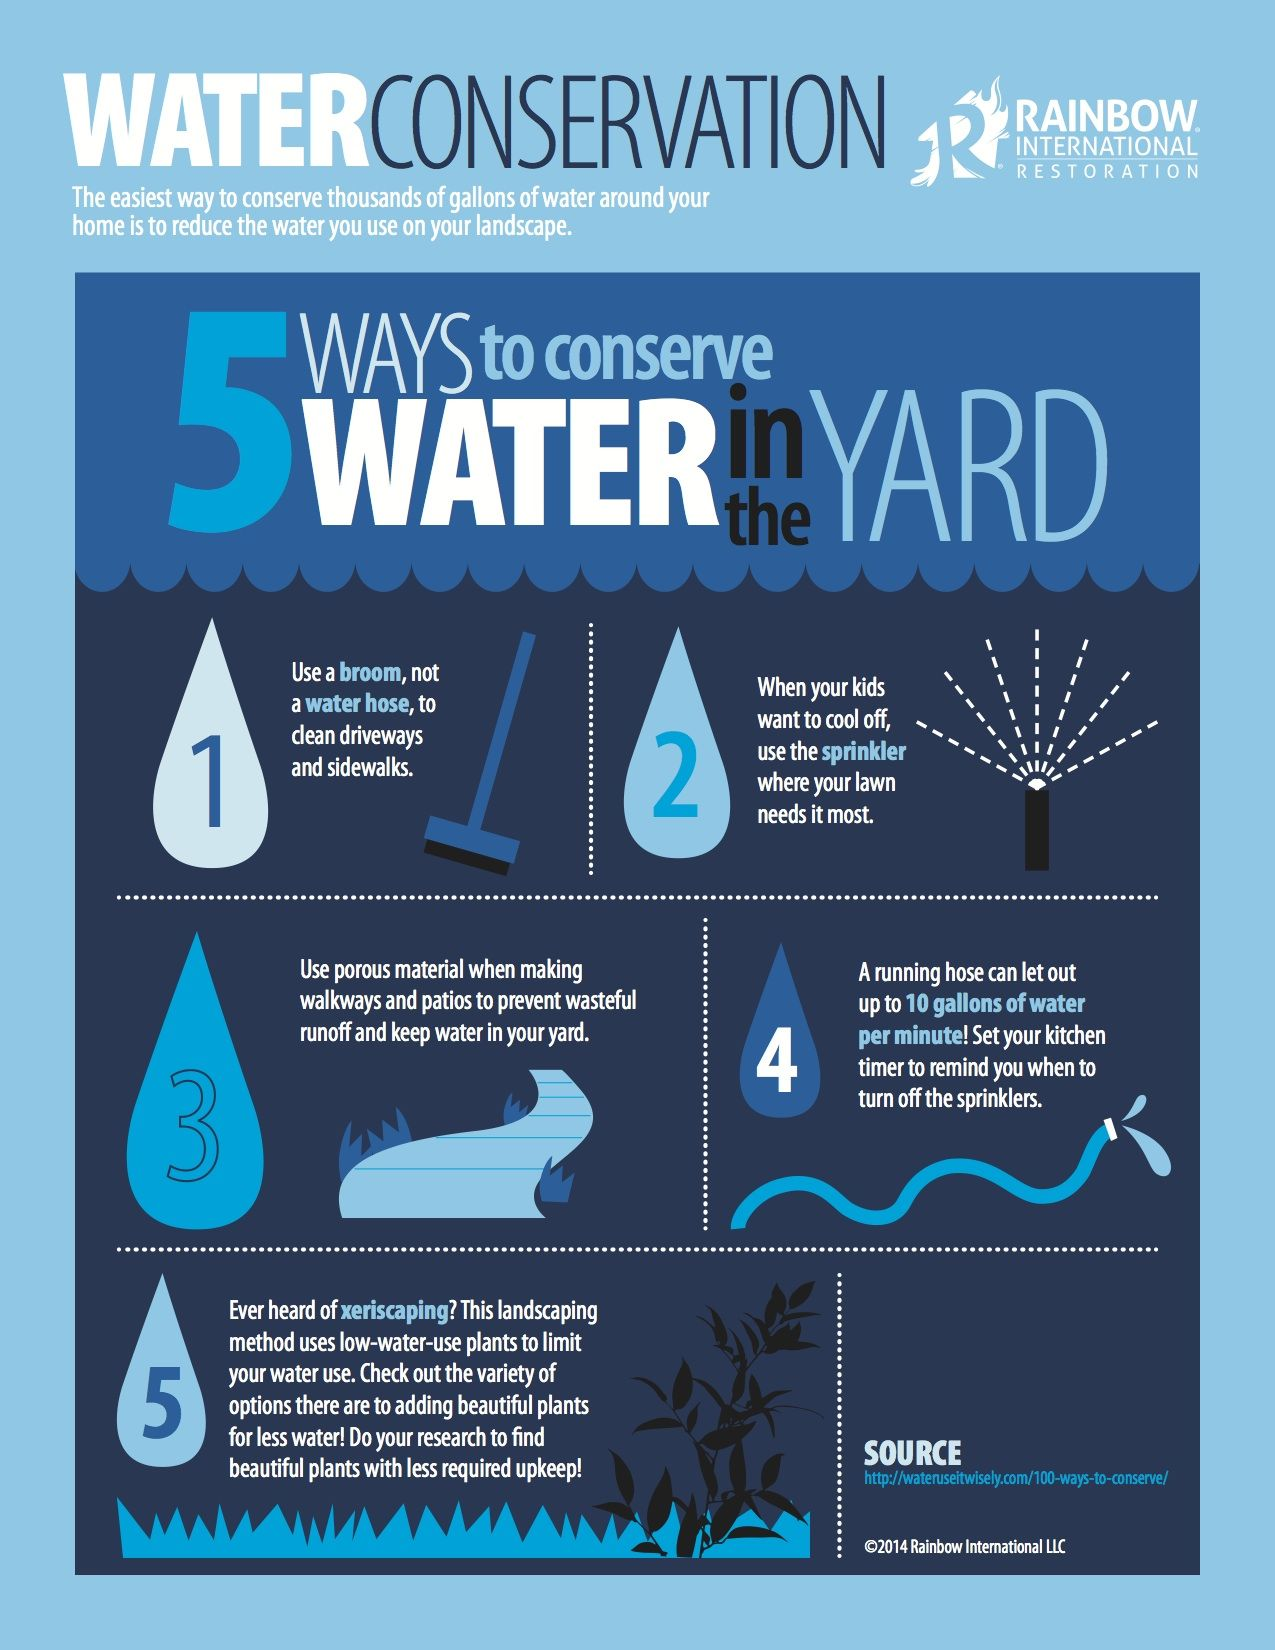 5 Ways To Conserve Water In The Yard With Images Ways To